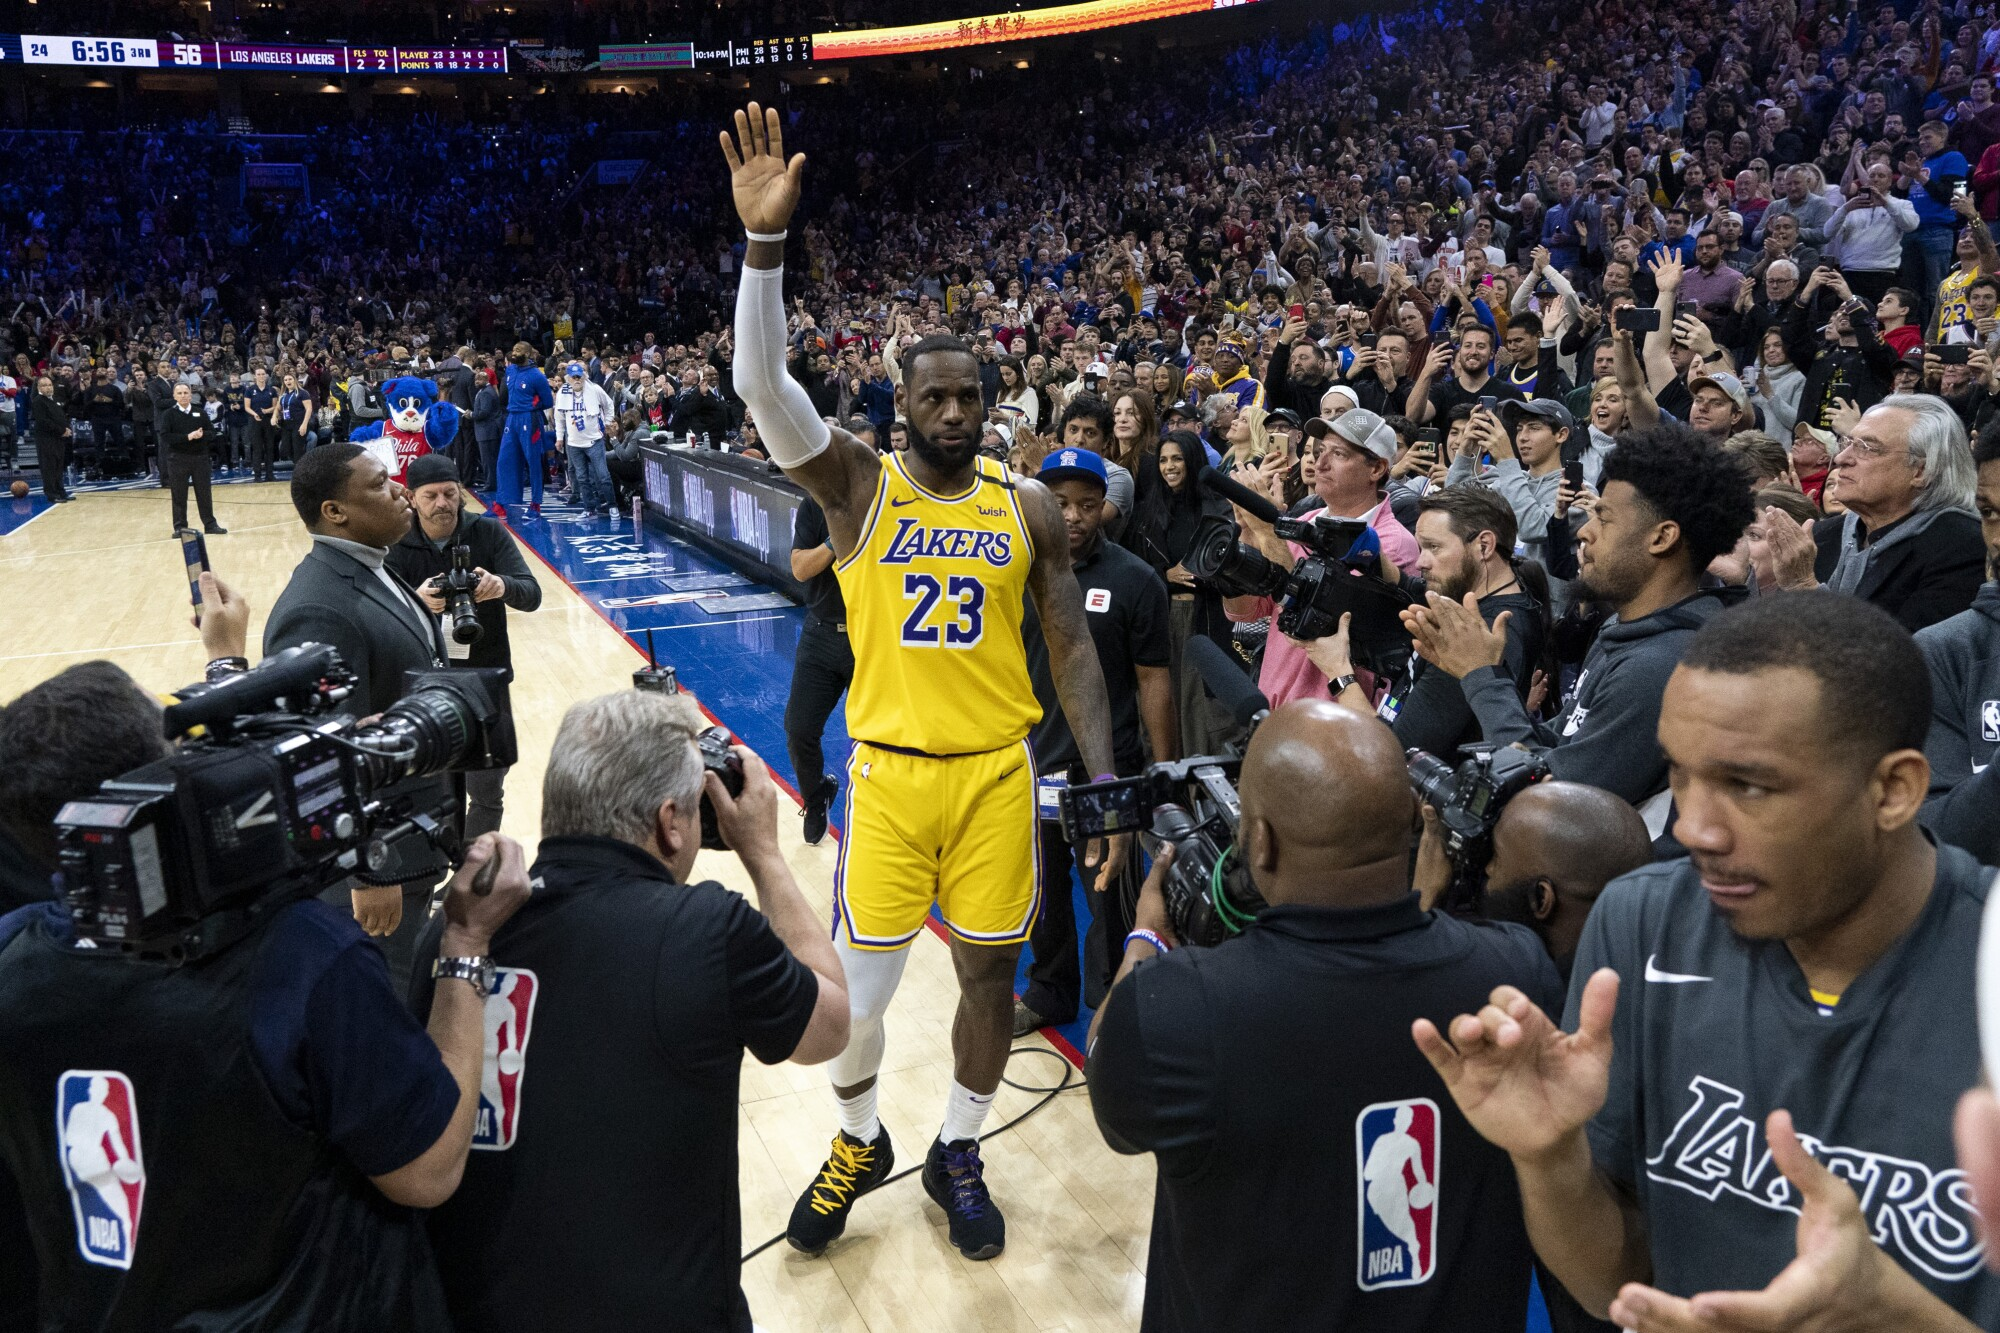 Lakers forward LeBron James acknowledges the fans' ovation after passing Kobe Bryant for No. 3 on the all-time scoring list.